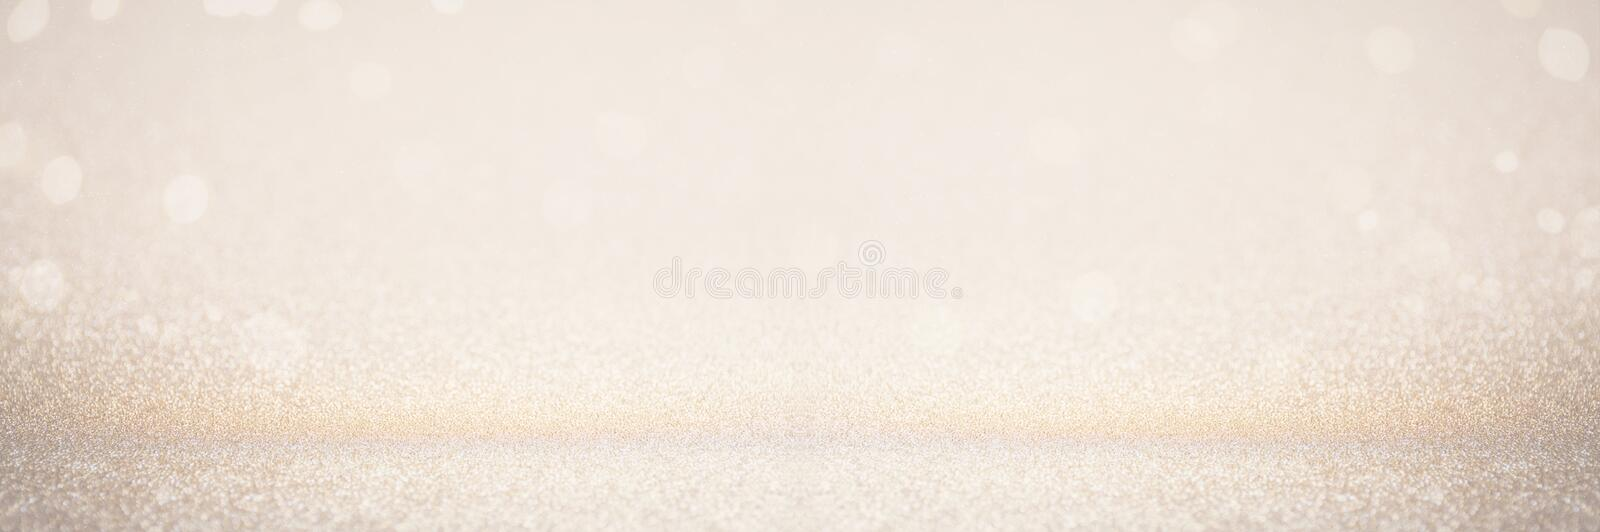 Abstract blur gold glitter christmas event celebration card design wide screen background concept - shiny golden light dust. Sparkle festive decoration effect stock photography